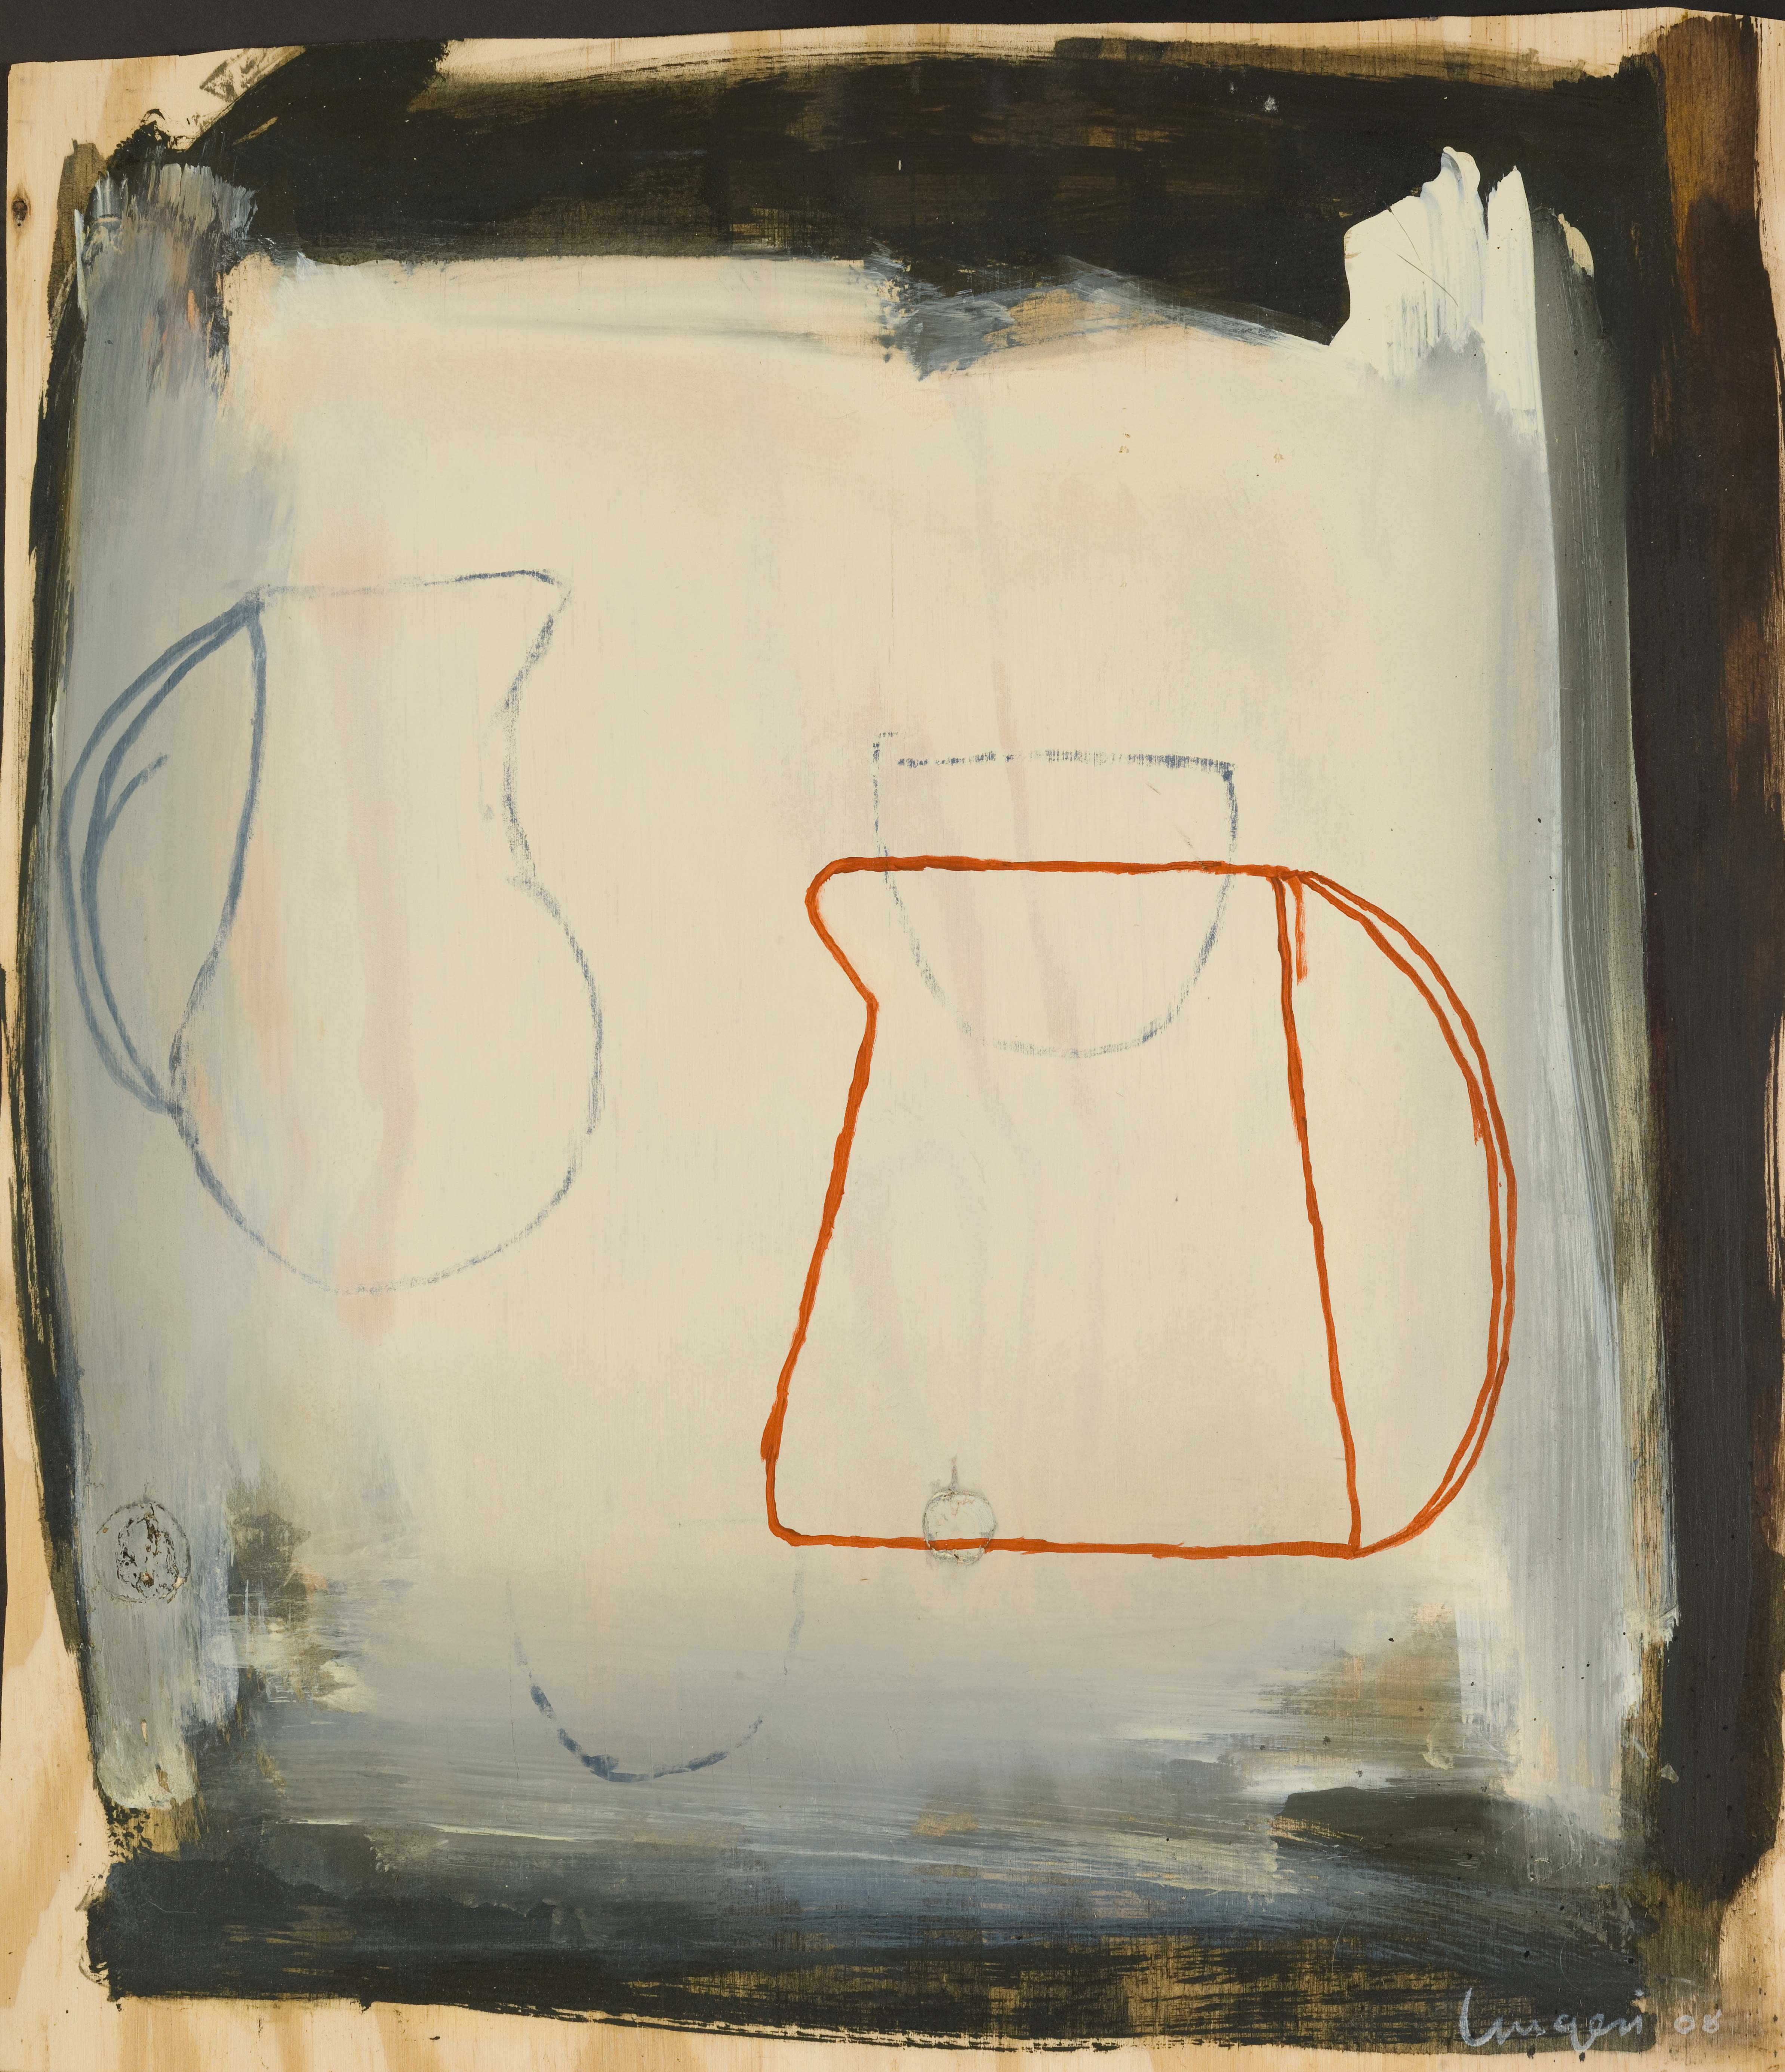 Small Red Jug (2008)